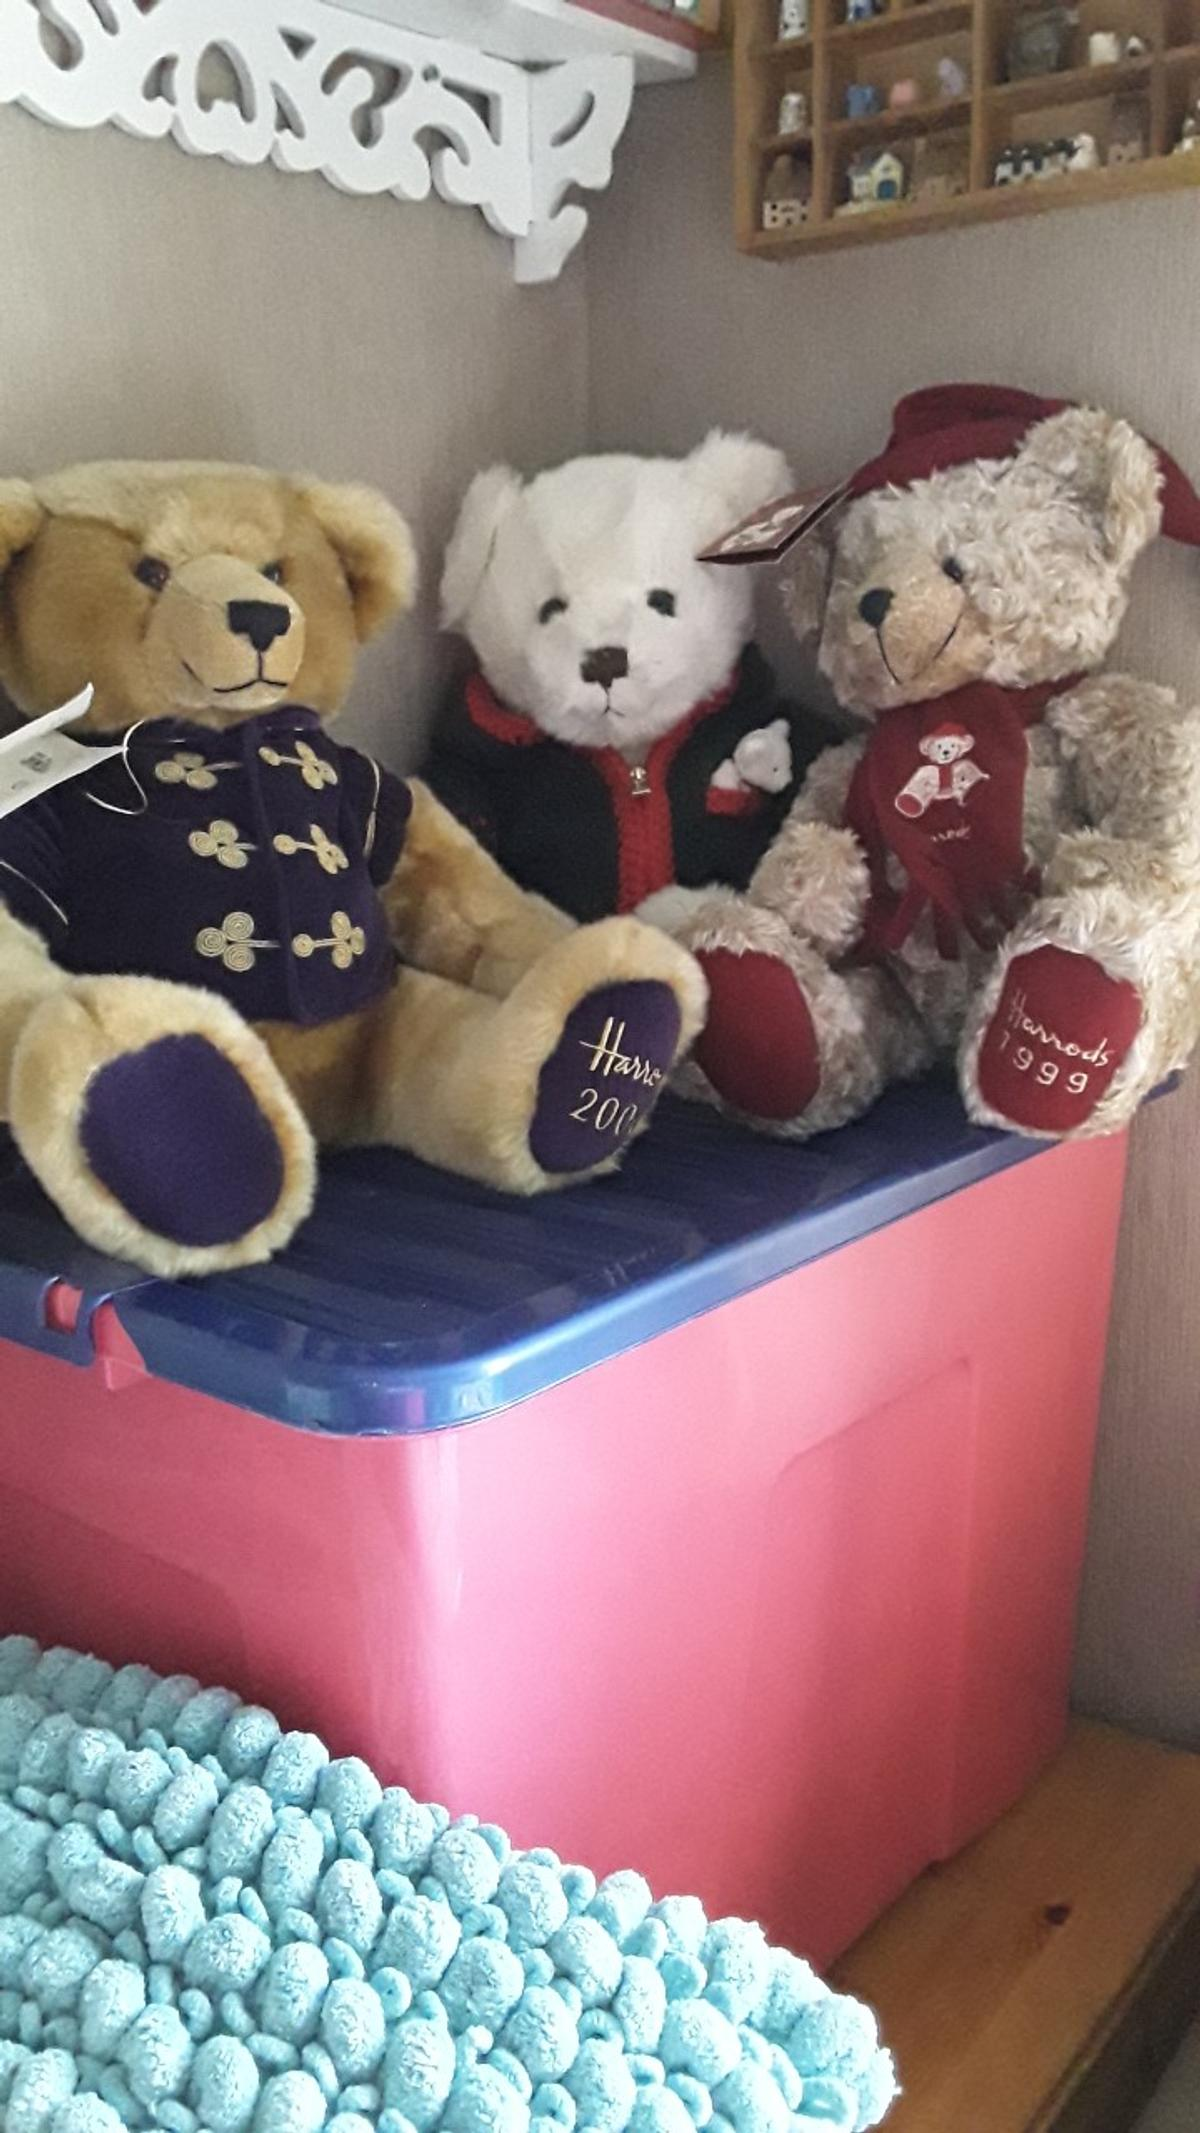 Three collectable limited edition Harrods bears 1999,2000 and 2006,all in good condition from smoke and pet free home. The Millennium in purple jacket with tag attached.  Alexander 2006 with cardigan and small bear in his pocket and tag attached.  1999 in curly fur with christmas scarf and hat